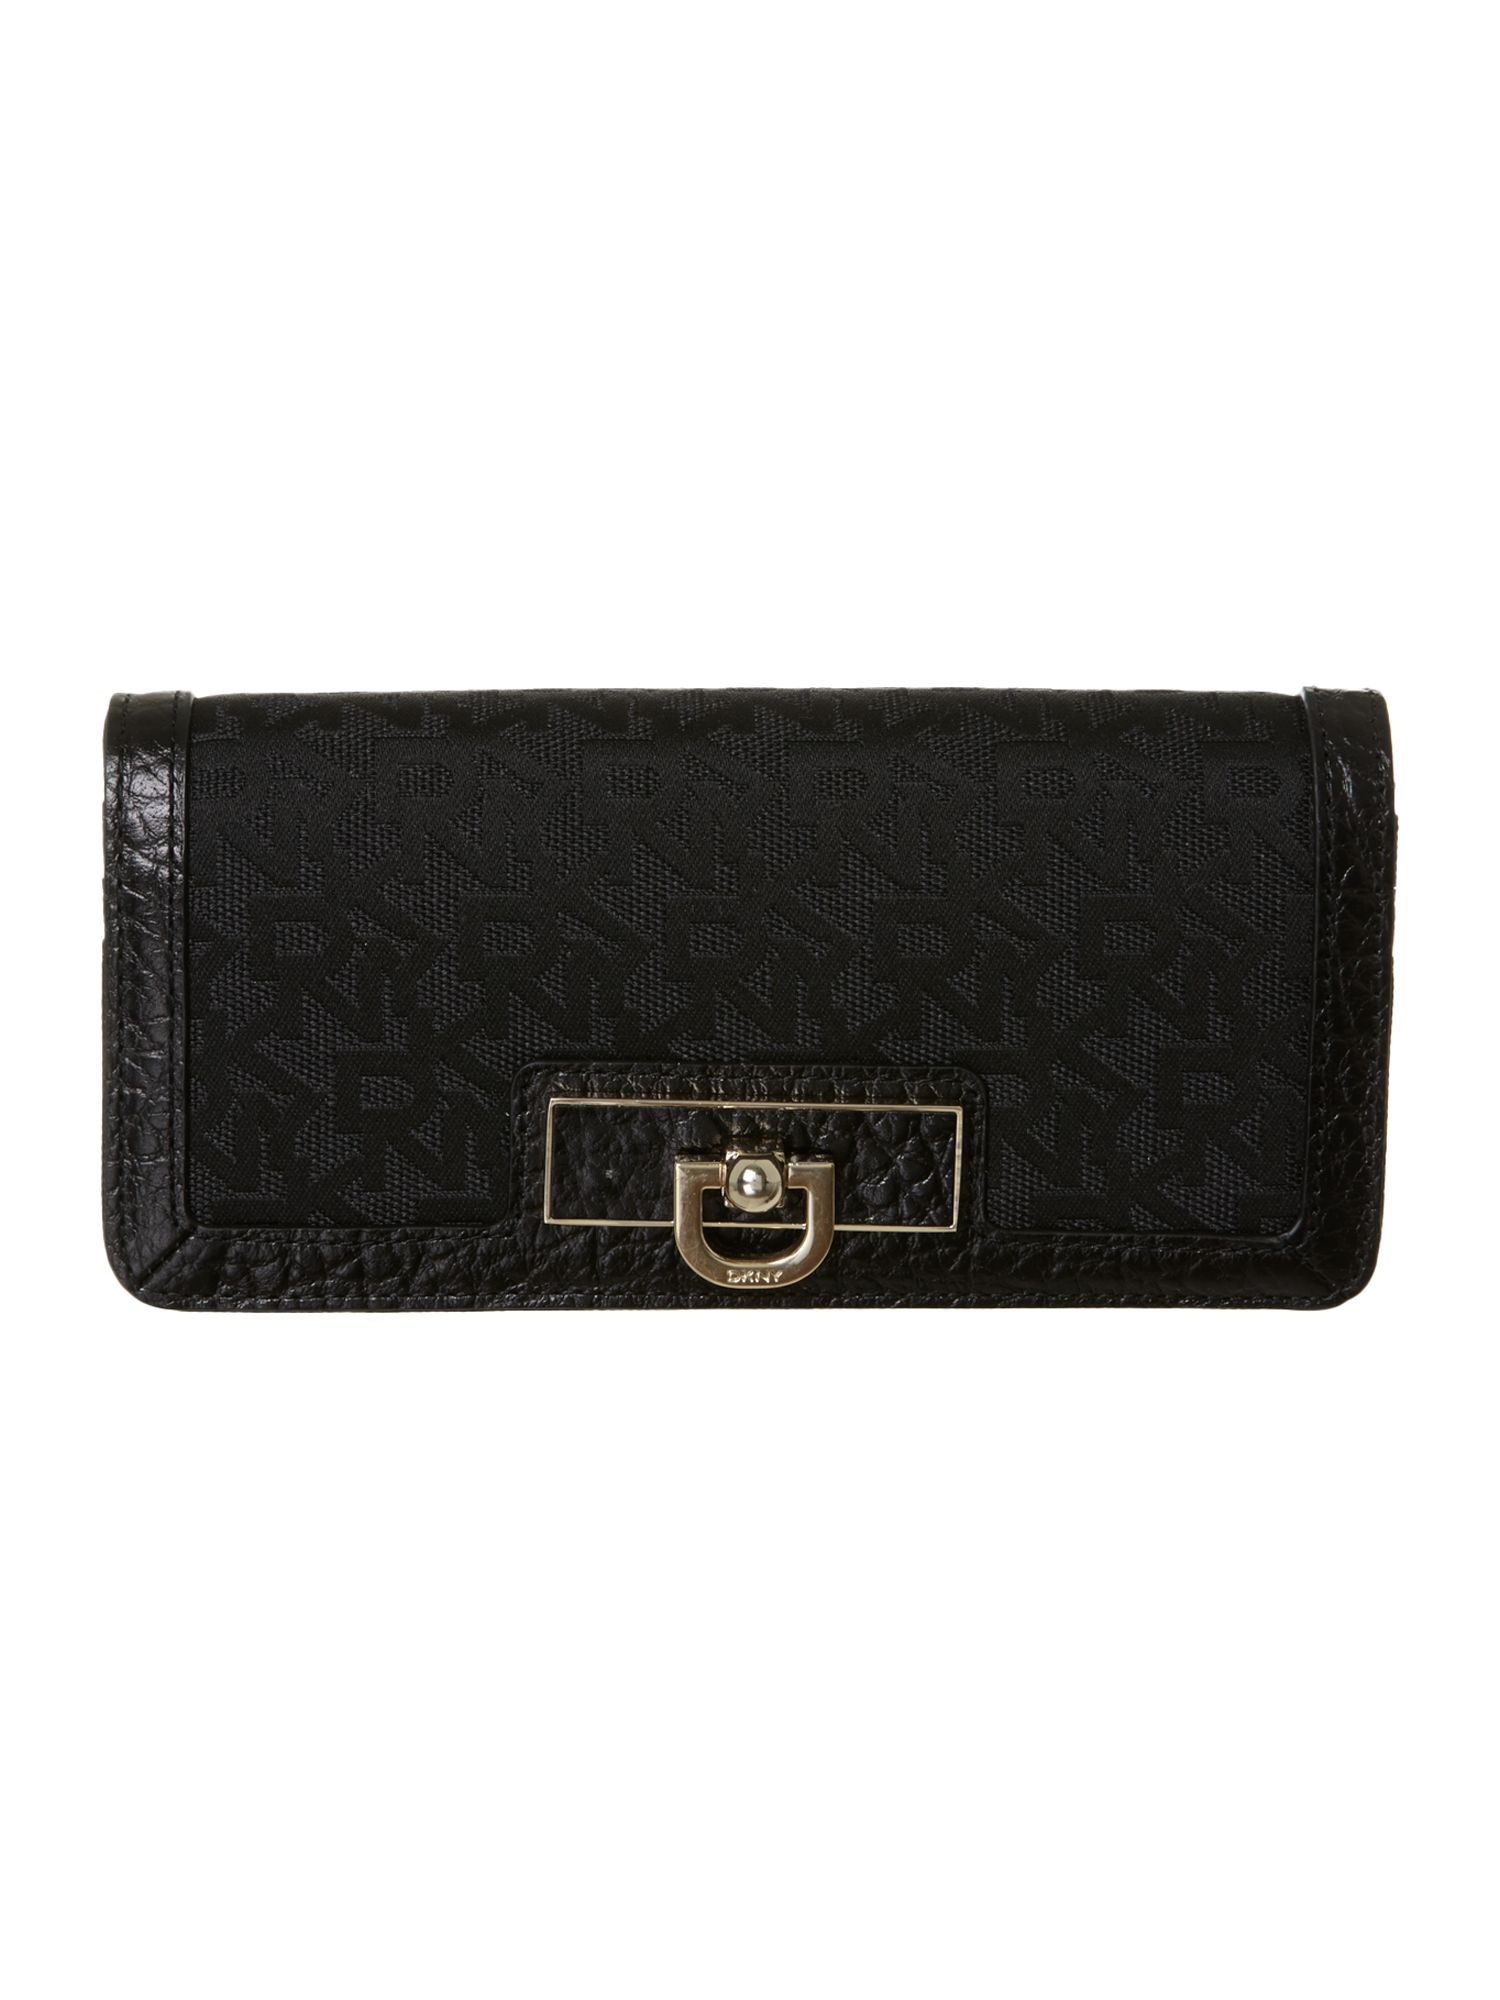 Black large flapover purse